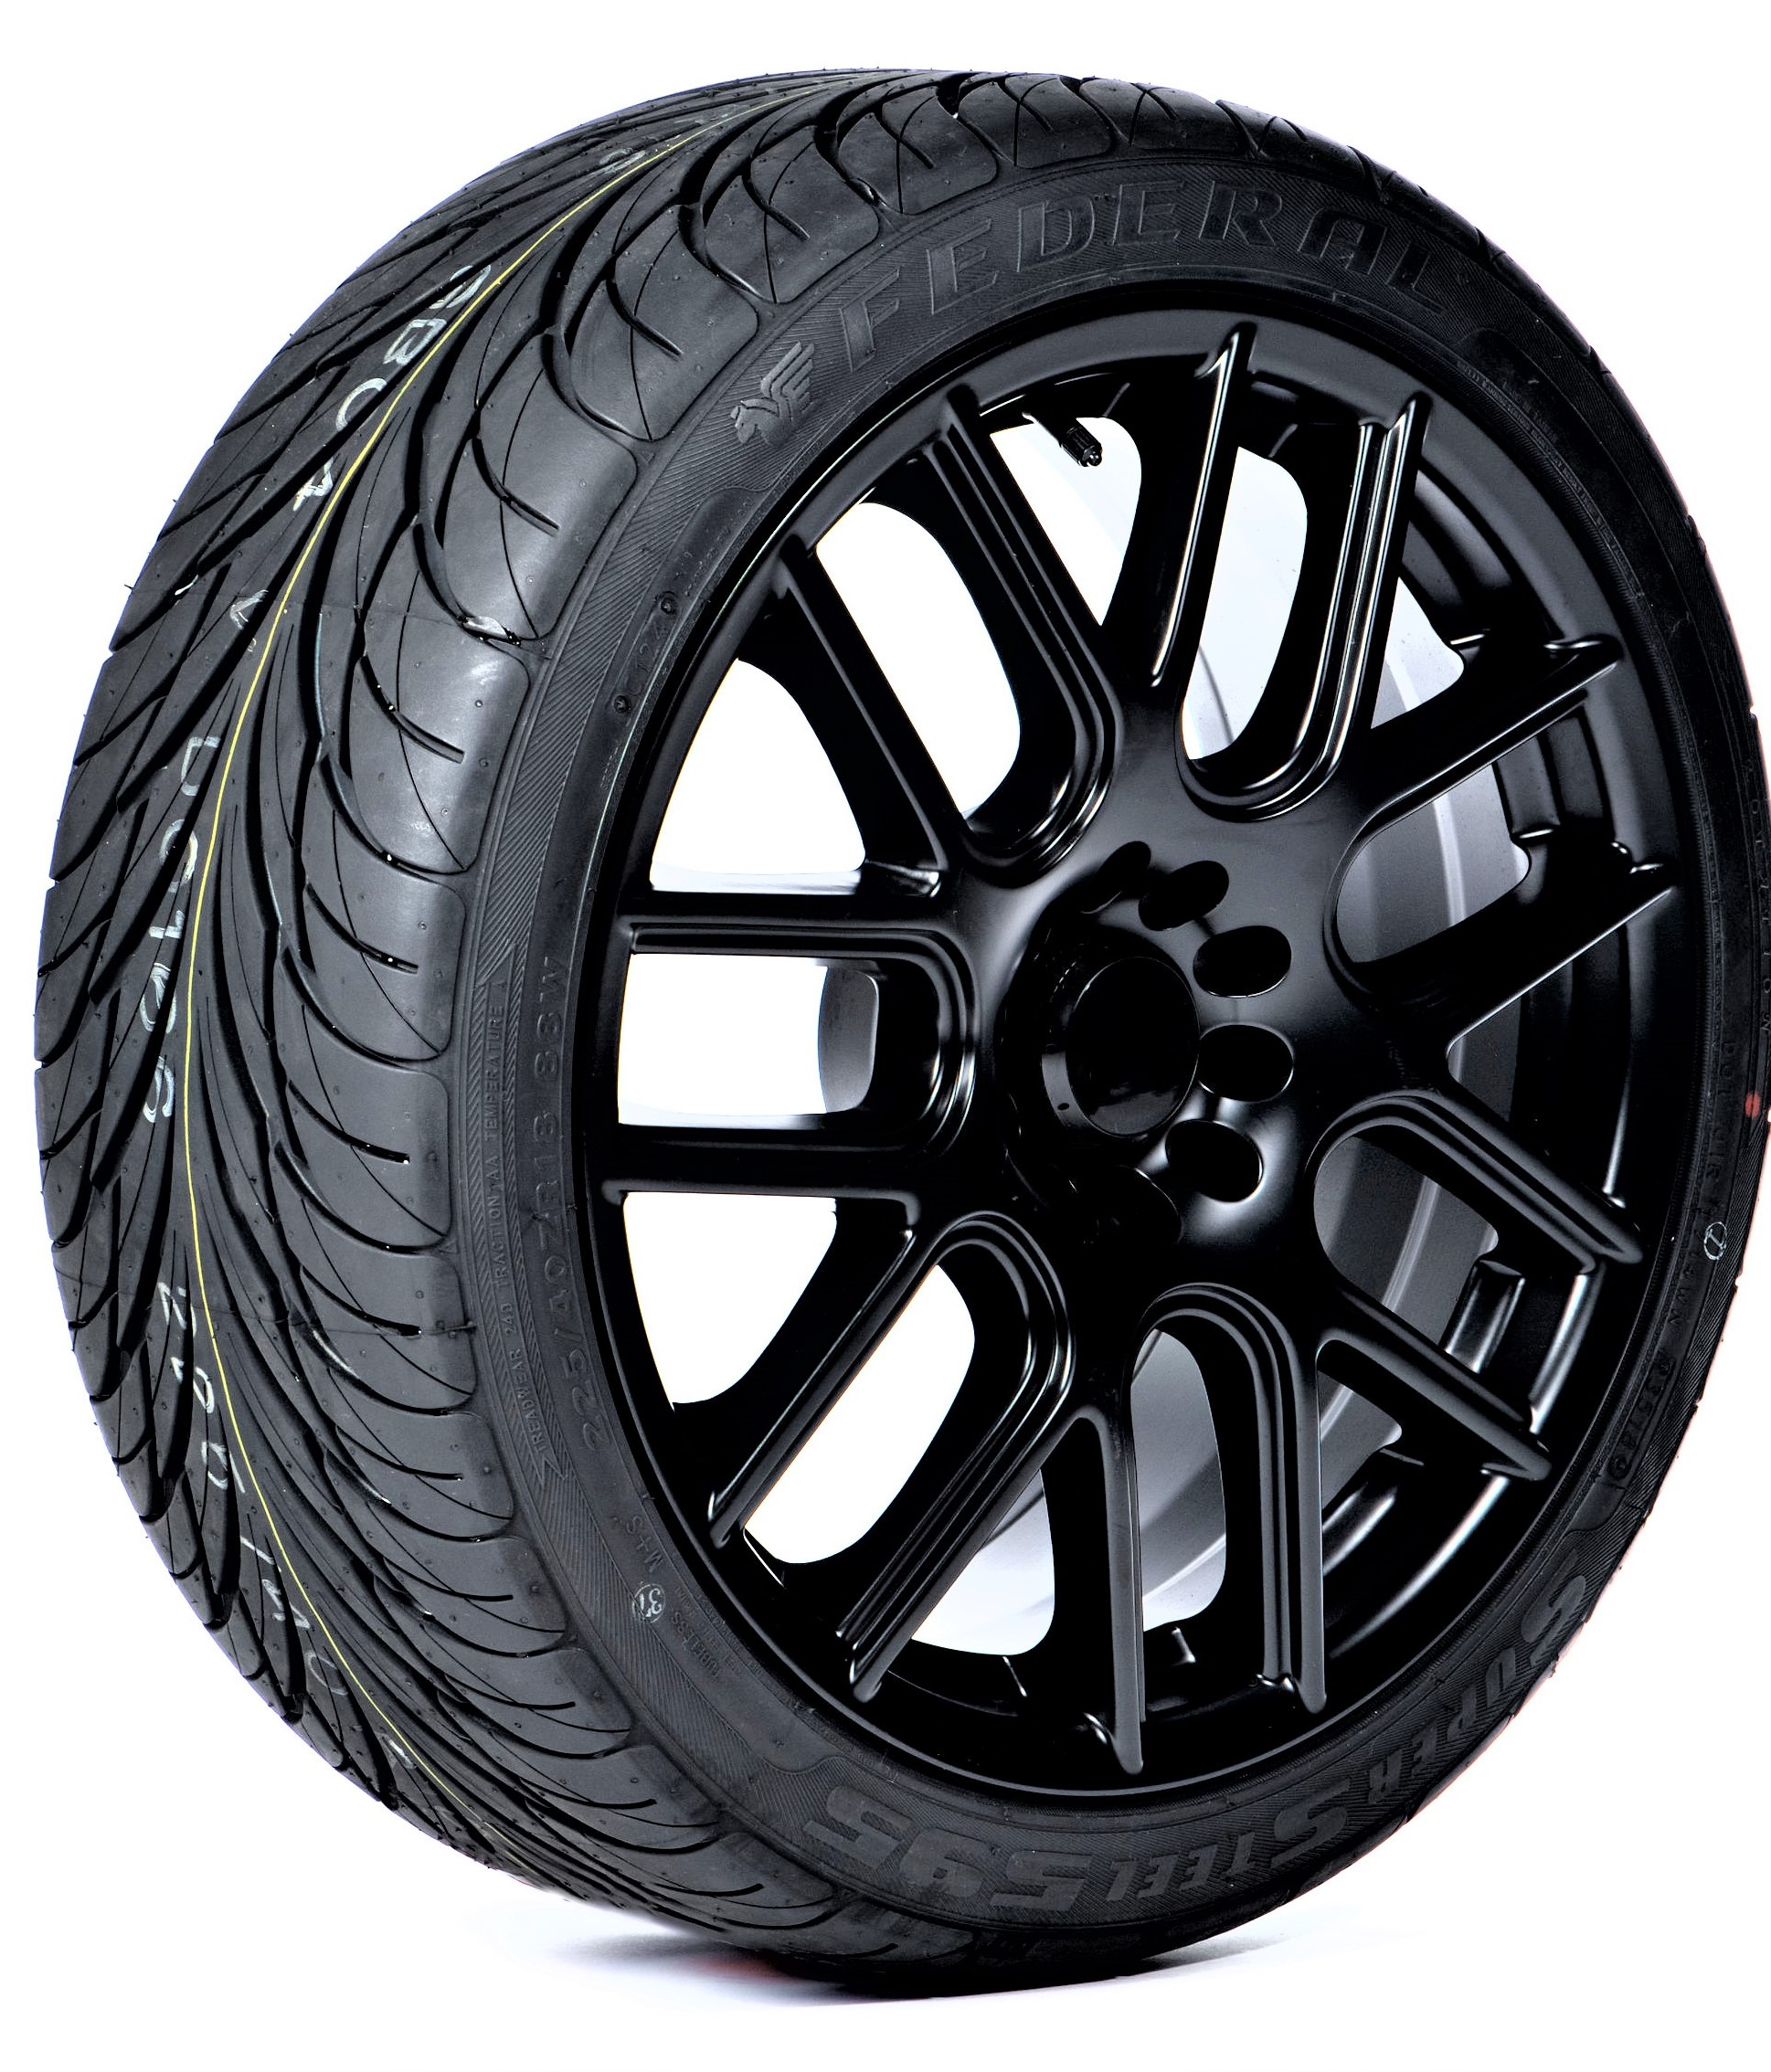 245 45 17 >> Details About New Federal Ss595 High Performance Tire 245 45r17 245 45 17 2454517 95v